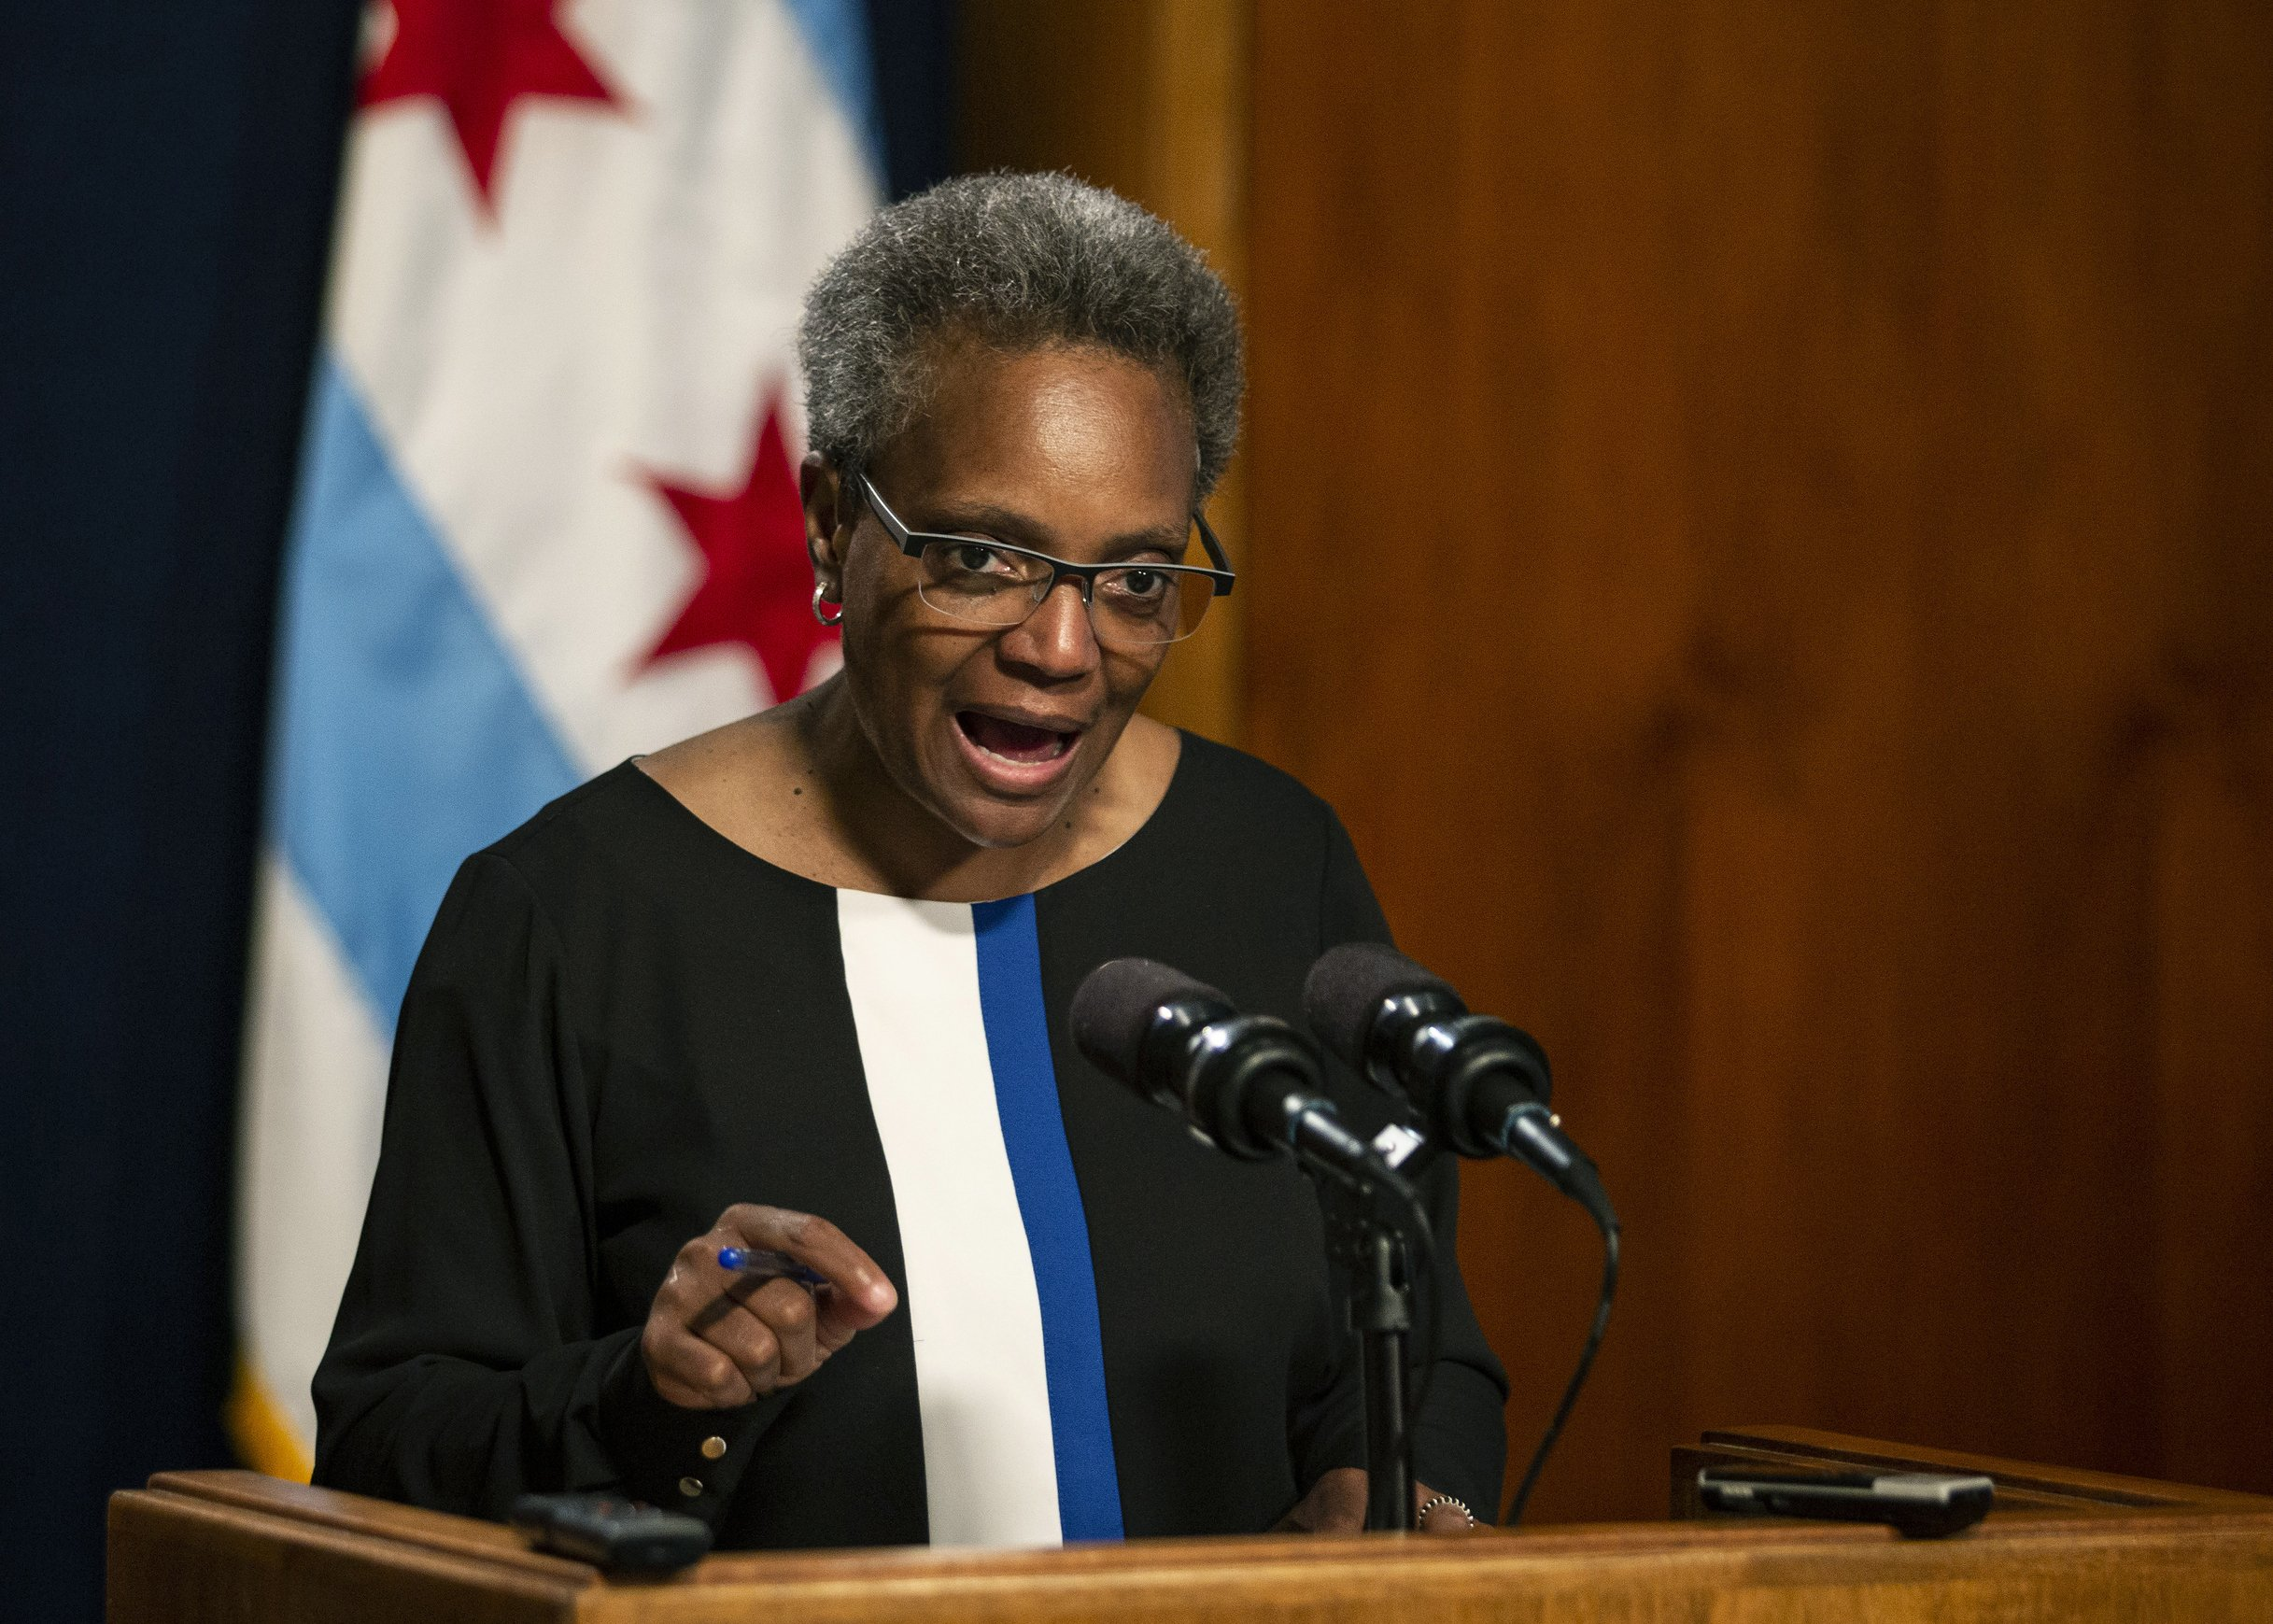 Chicago mayor: Letter being sent to ask alderman to resign